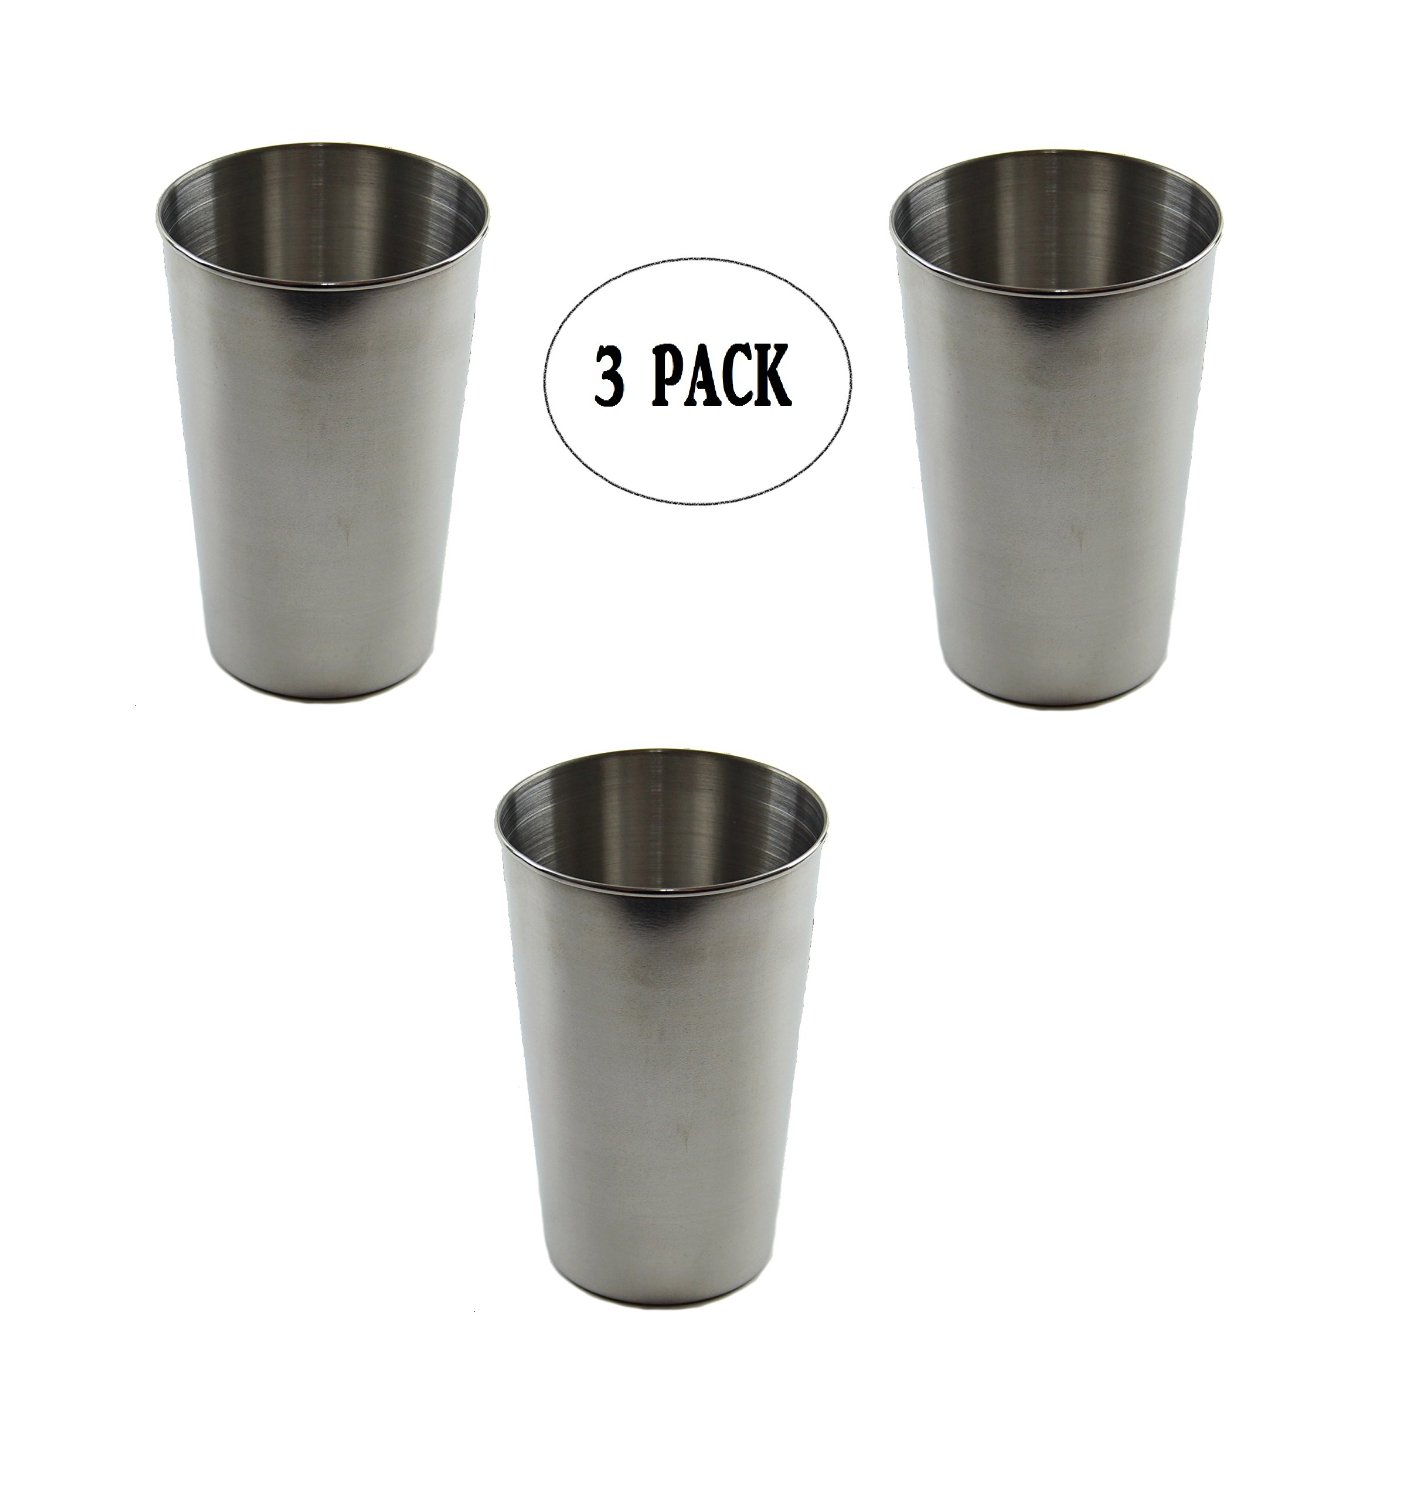 Wealers 16oz Stainless Steel Pint Cups, DURABLE - REUSABLE - STACKABLE, Great for Beer Pints, Iced Tea Tumblers, Wine & Water Mugs, Camping Cup - Bar Set.